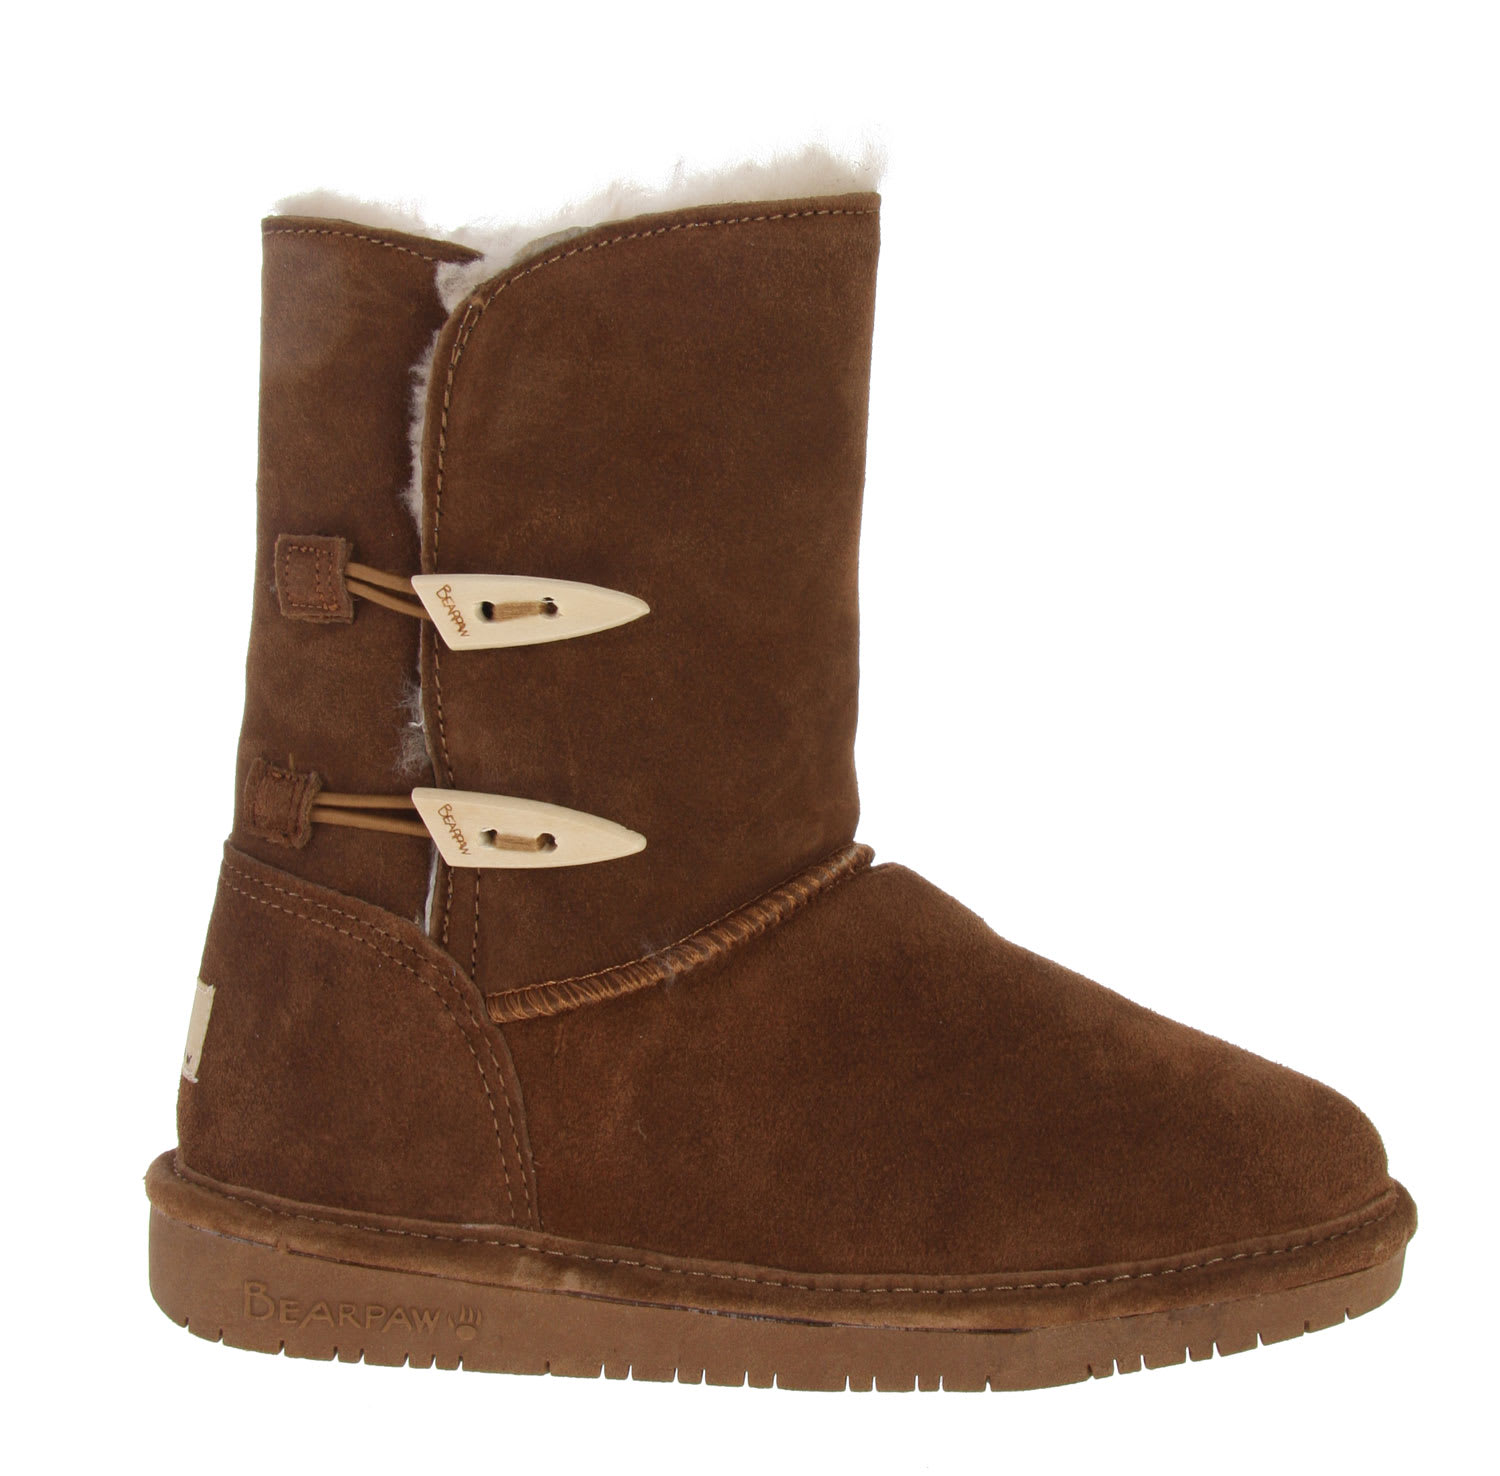 Image of Bearpaw Abigail 8 Inch Street Boots